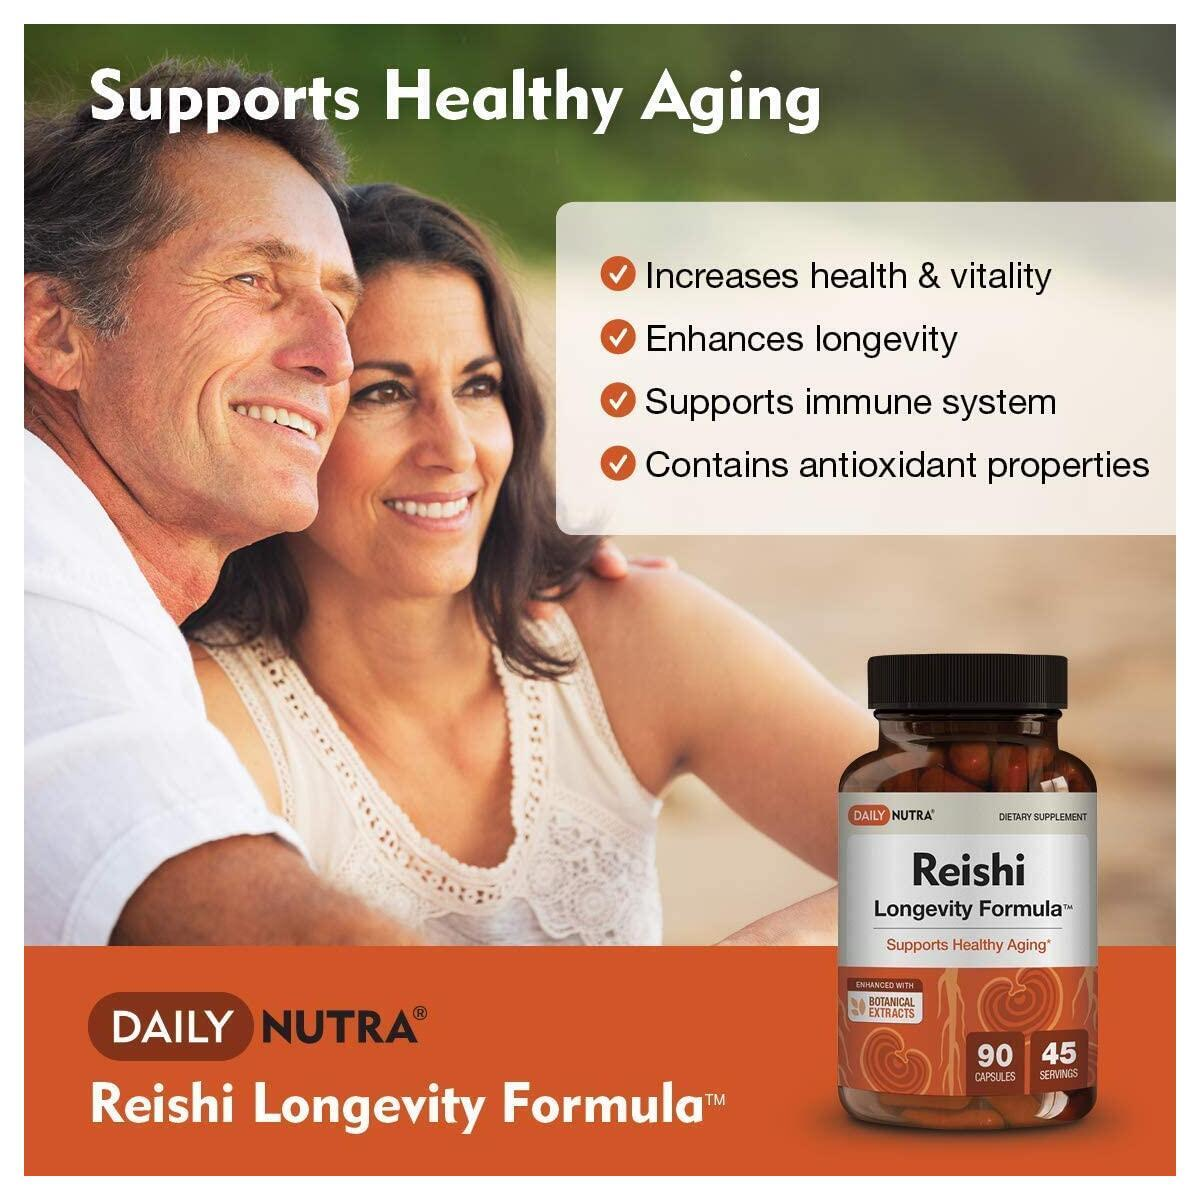 Reishi Longevity Formula by DailyNutra - Anti-Aging Supplement | Organic Reishi Mushroom Extract with KSM-66 Ashwagandha and Astragalus (90 Capsules)